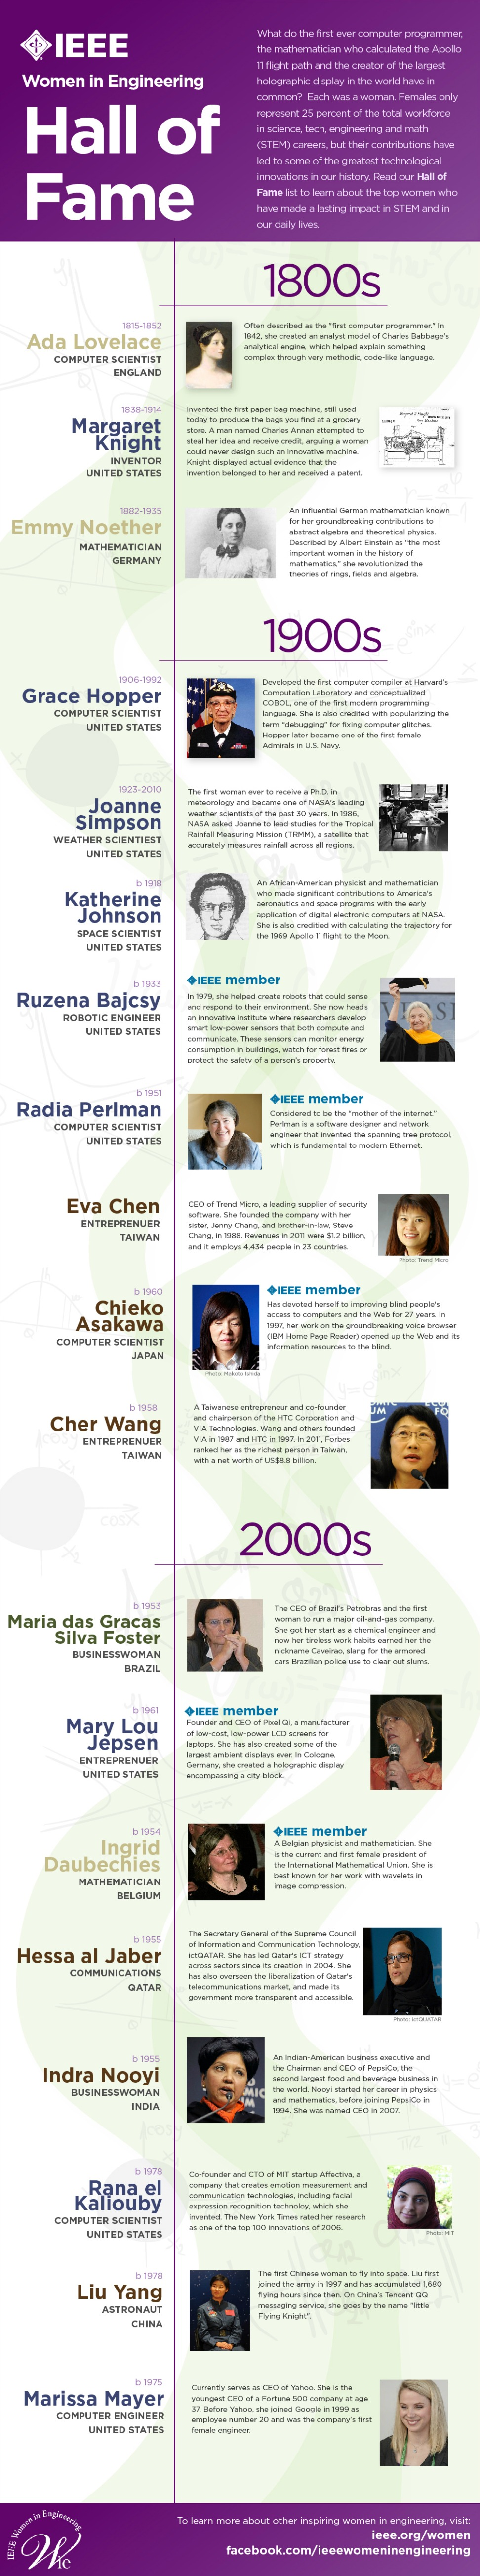 Rise of women in technology